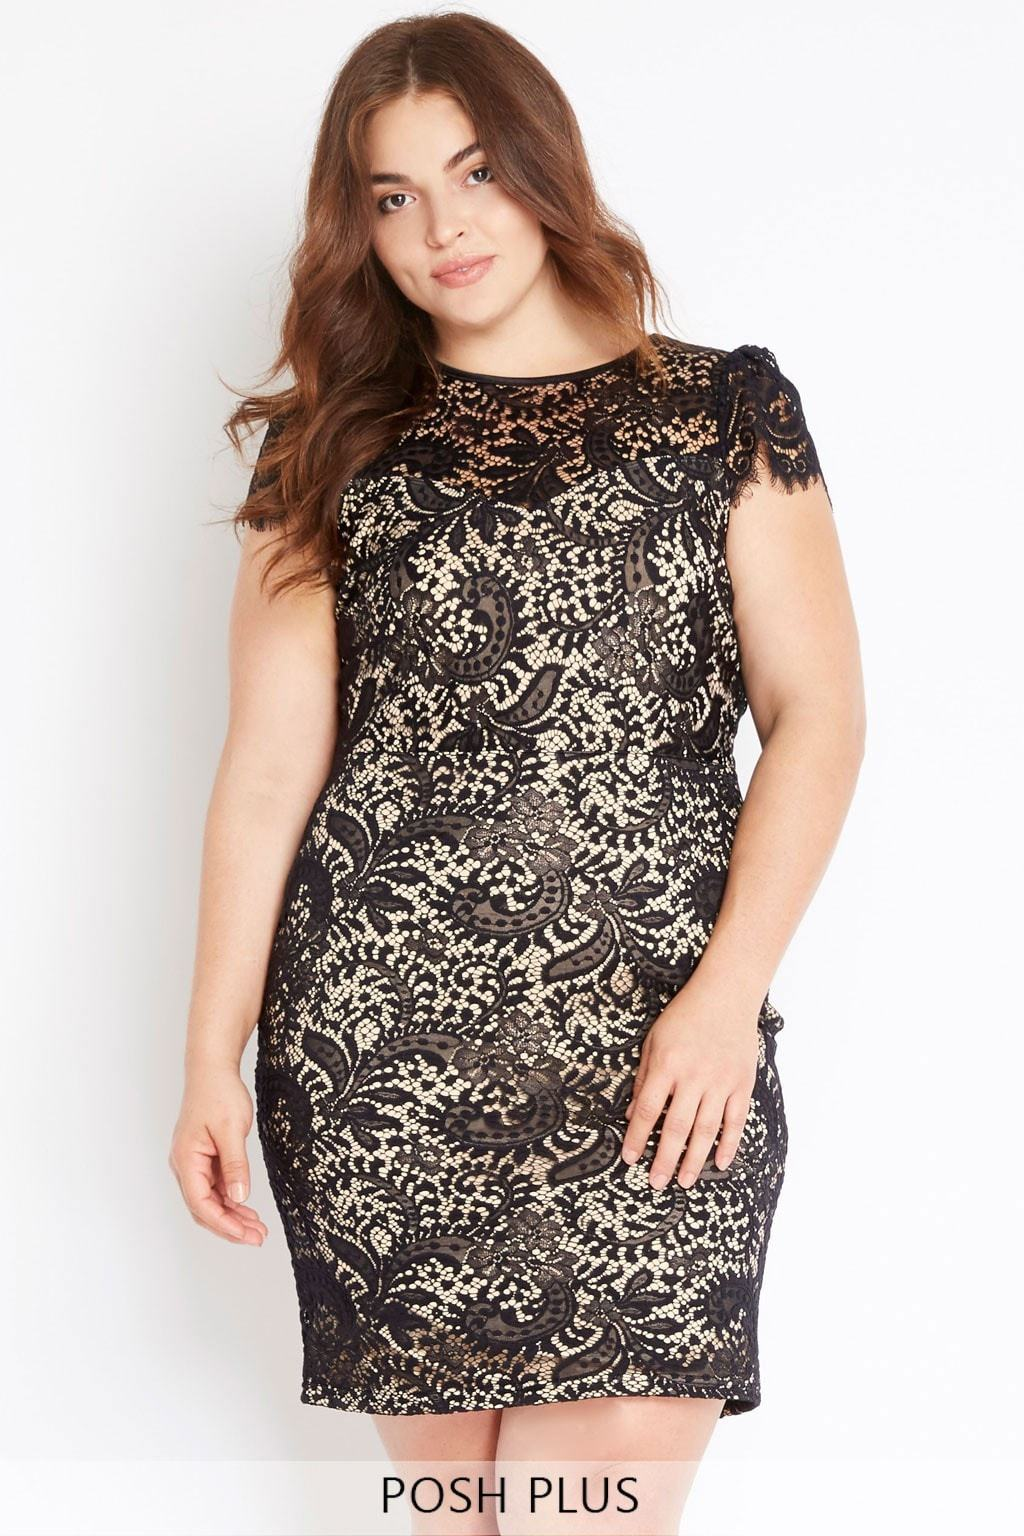 Poshsquare Plus 1XL / Black Eyelash Lace Dress Plus Size